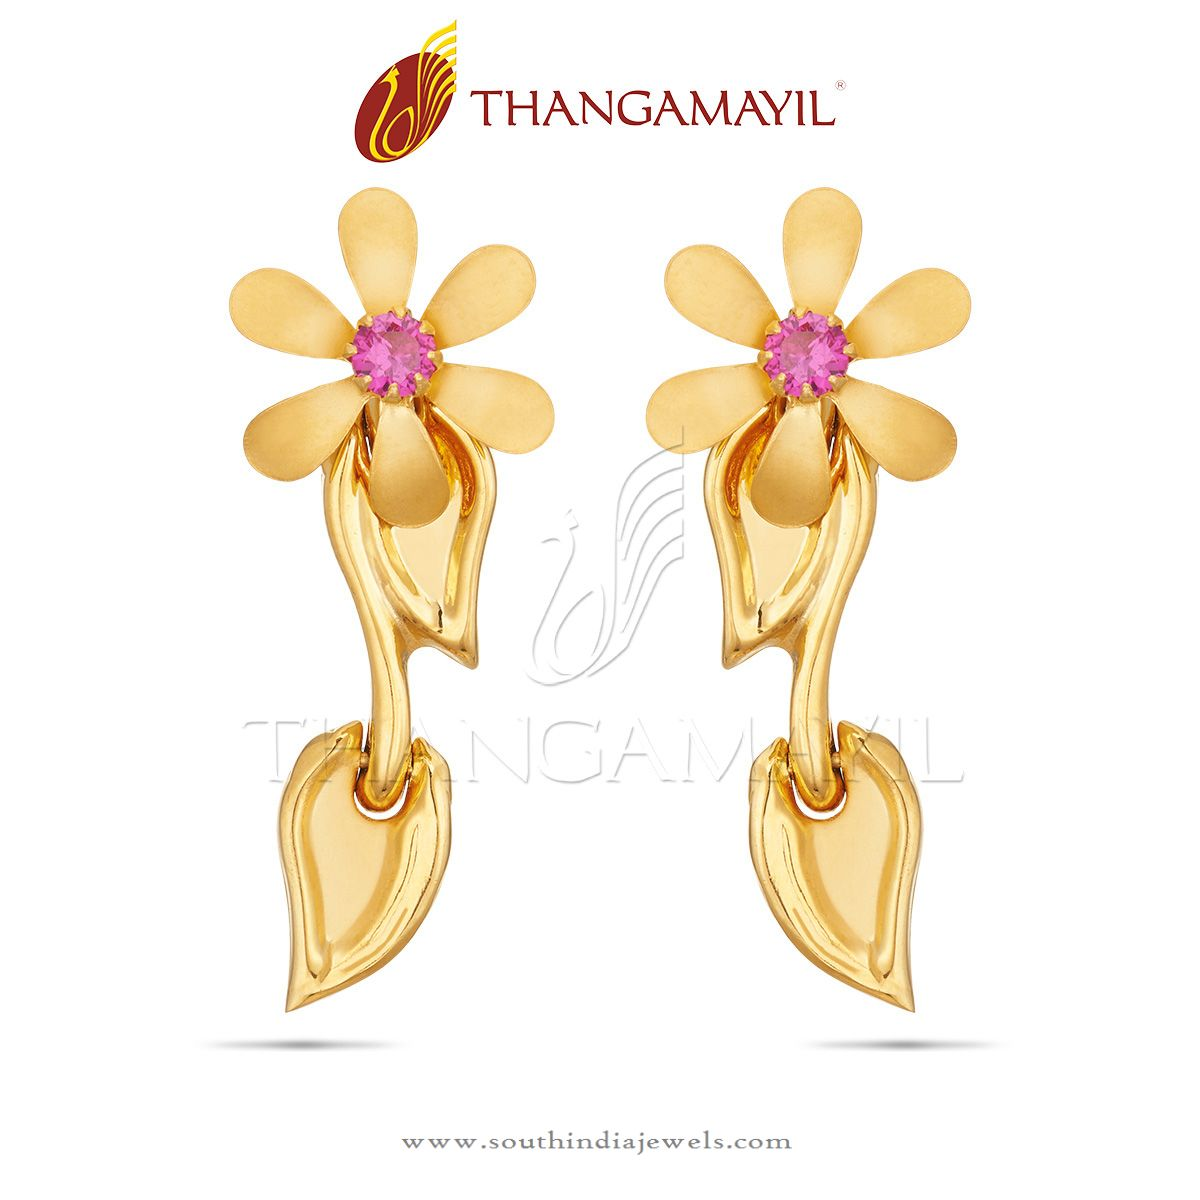 petals balls flower gm products w earrings stud clustered gold lightly mm yellow etched